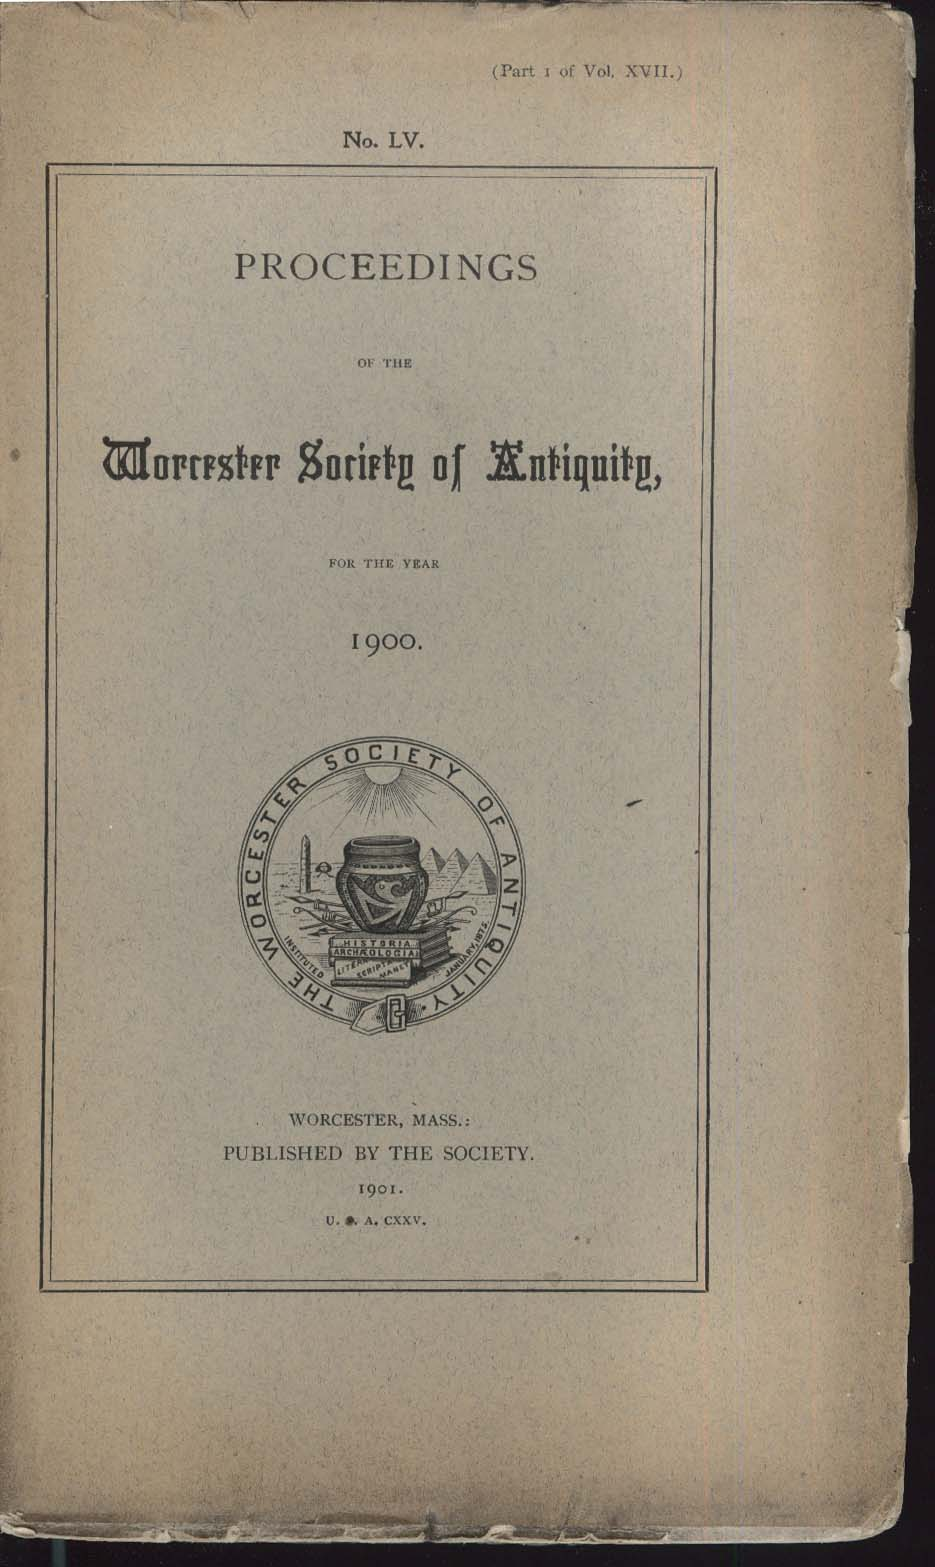 Proceedings Worcester Society of Antiquity 1900 No LV: